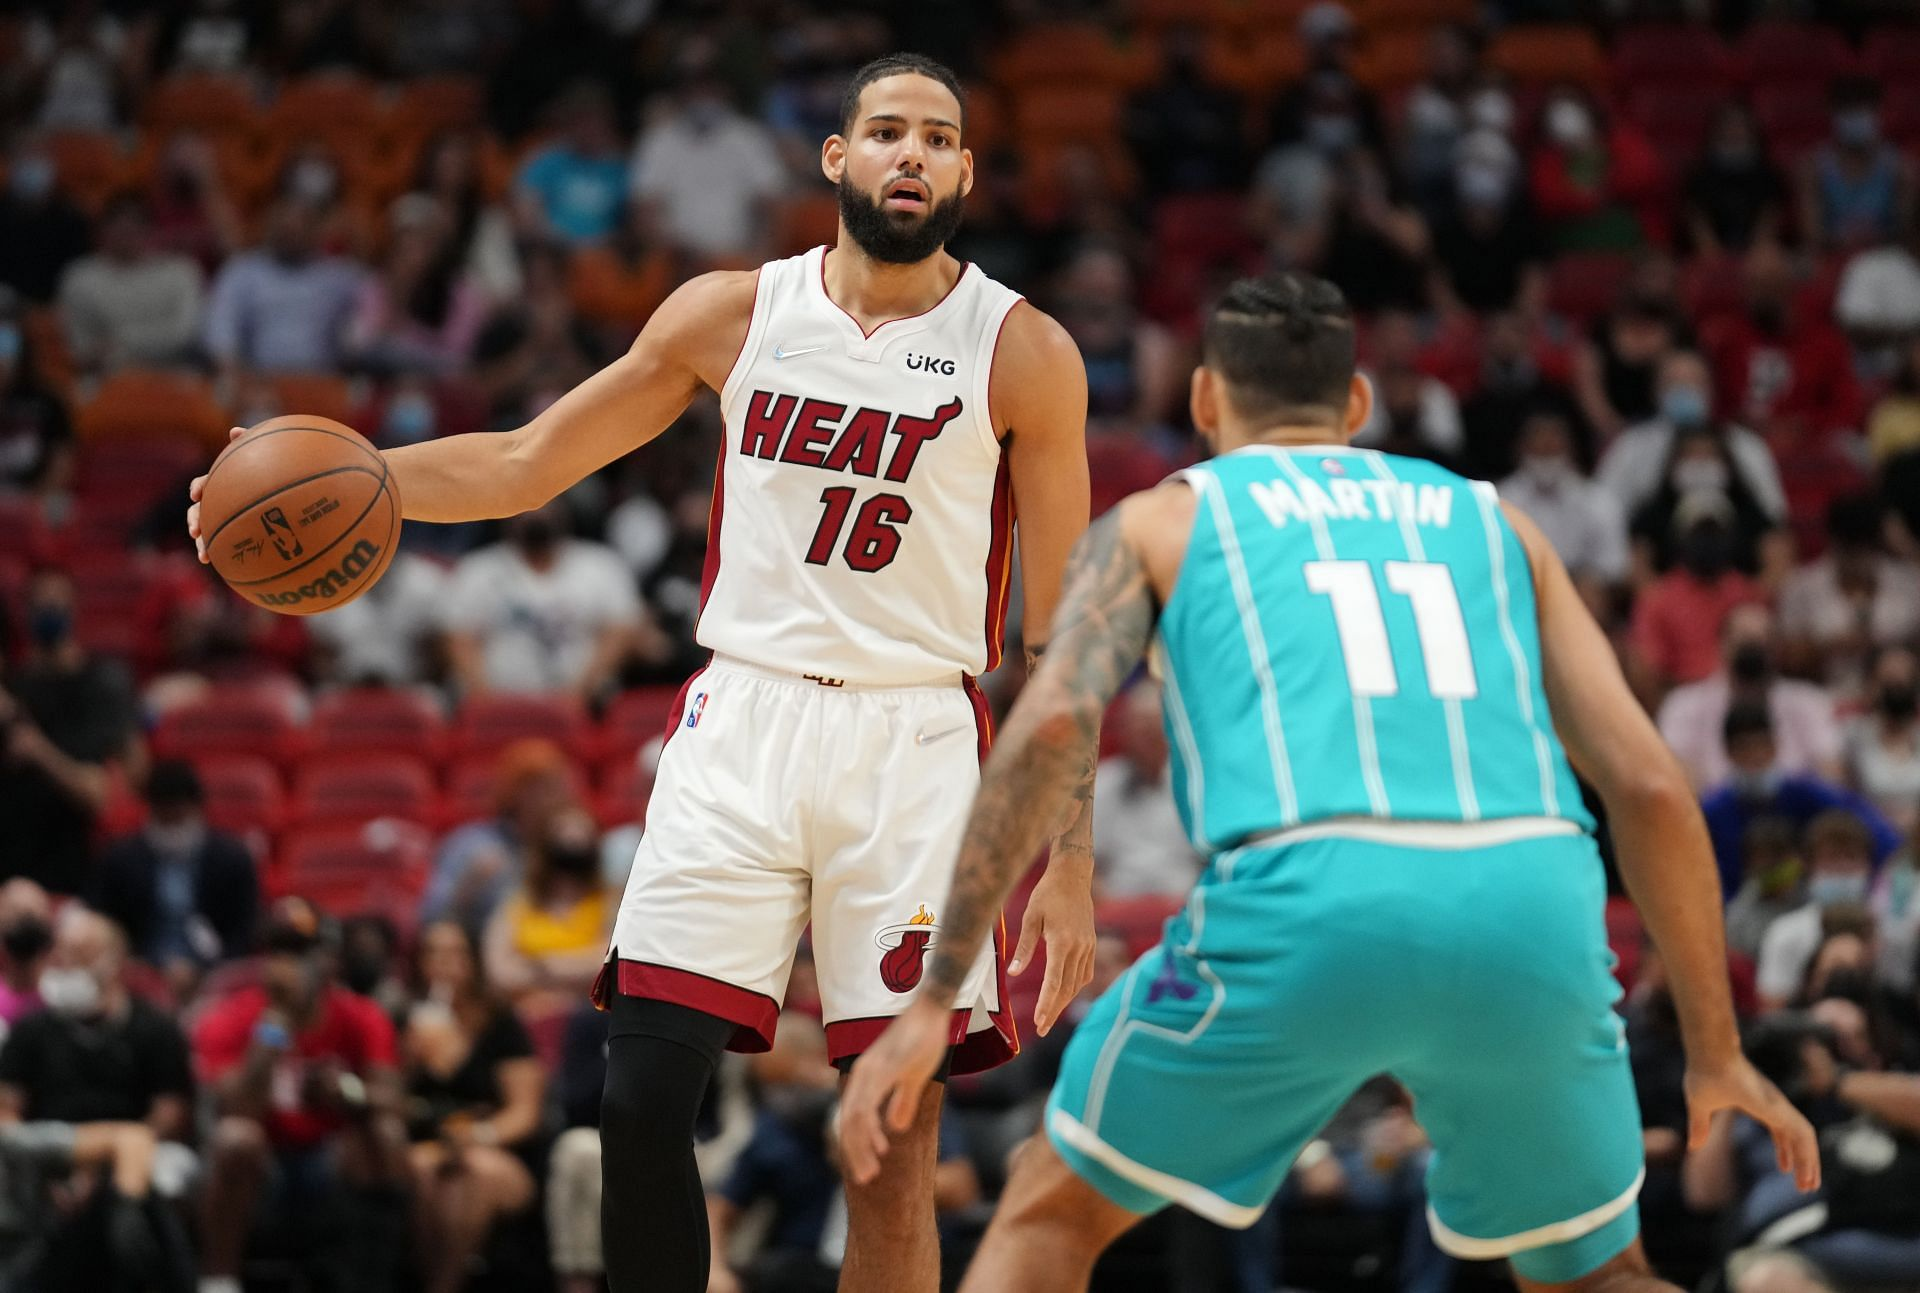 Caleb Martin goes head to head against Cody Martin in the Miami Heat vs Charlotte Hornets matchup